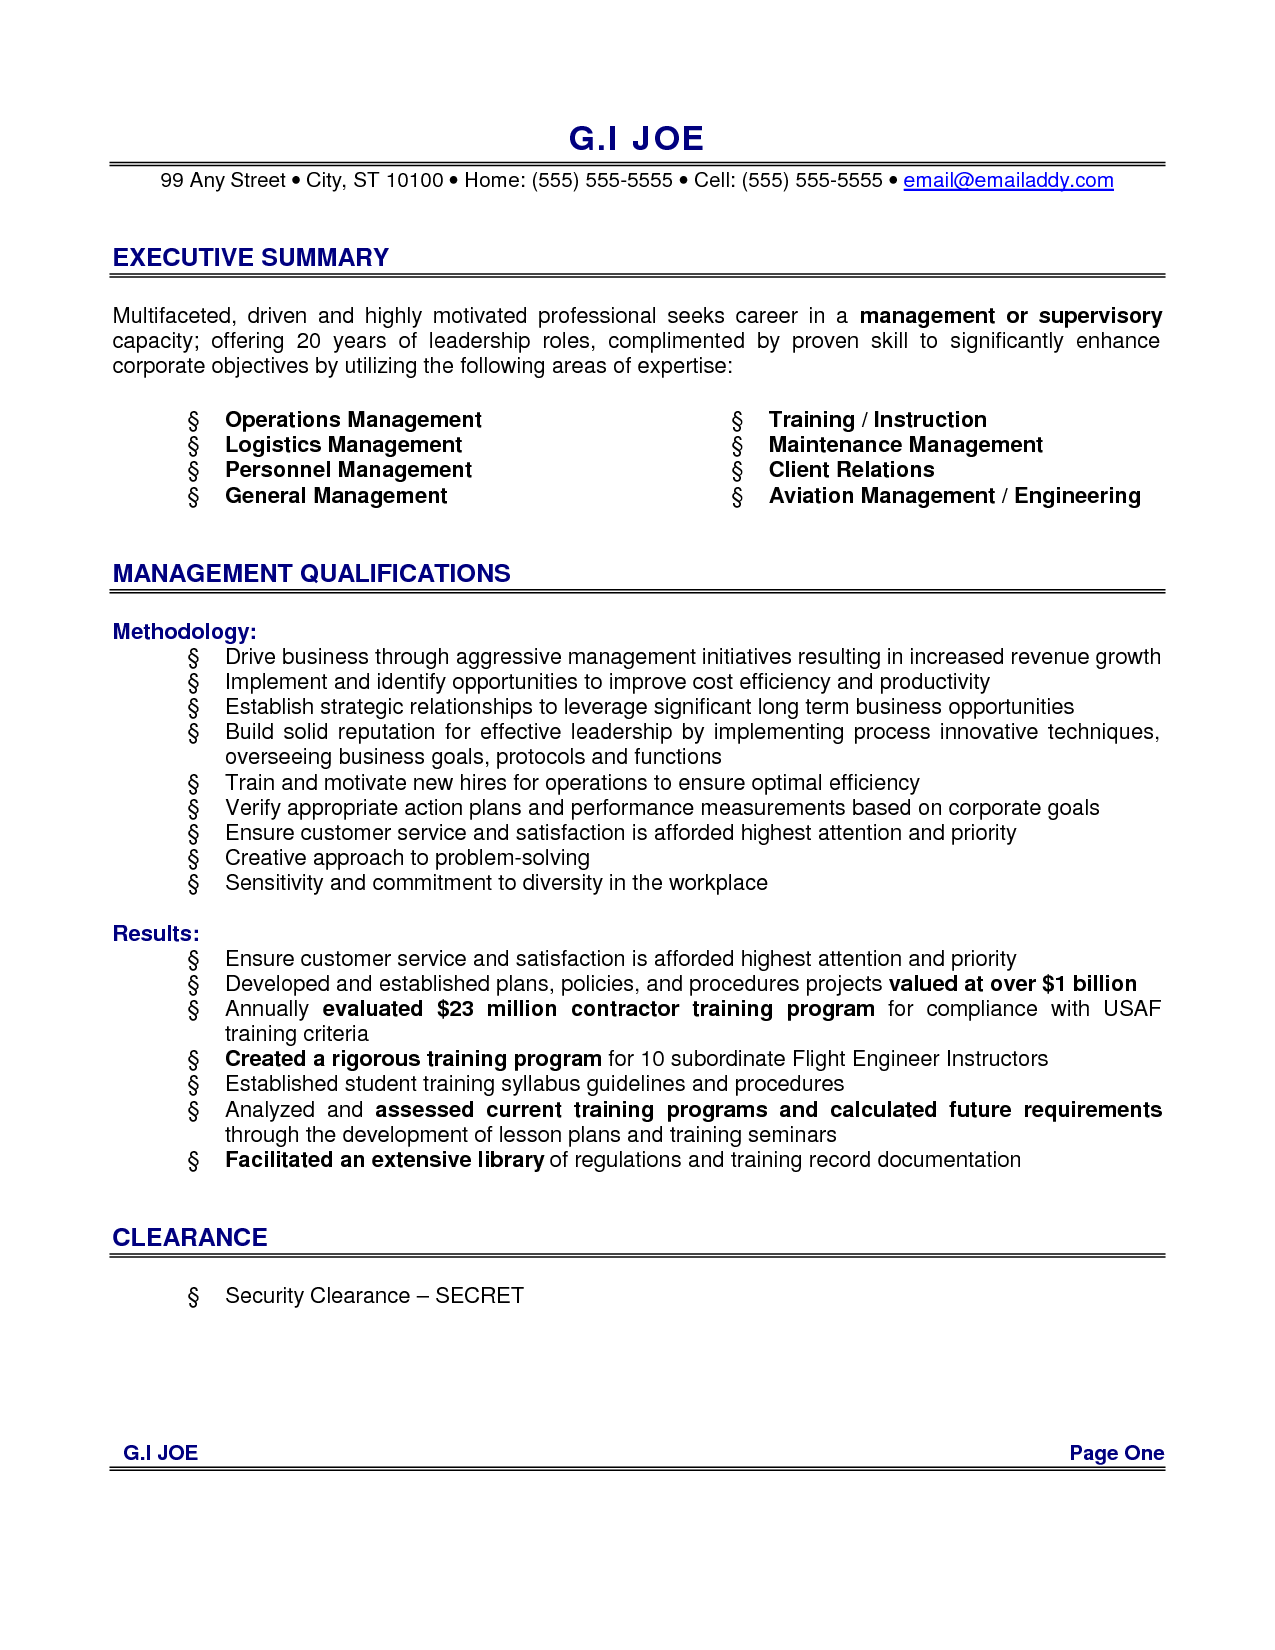 Resume examples for executive summary with management qualifications resume examples for executive summary with management qualifications executive resume example as writing guidelines following the best examples in thecheapjerseys Choice Image